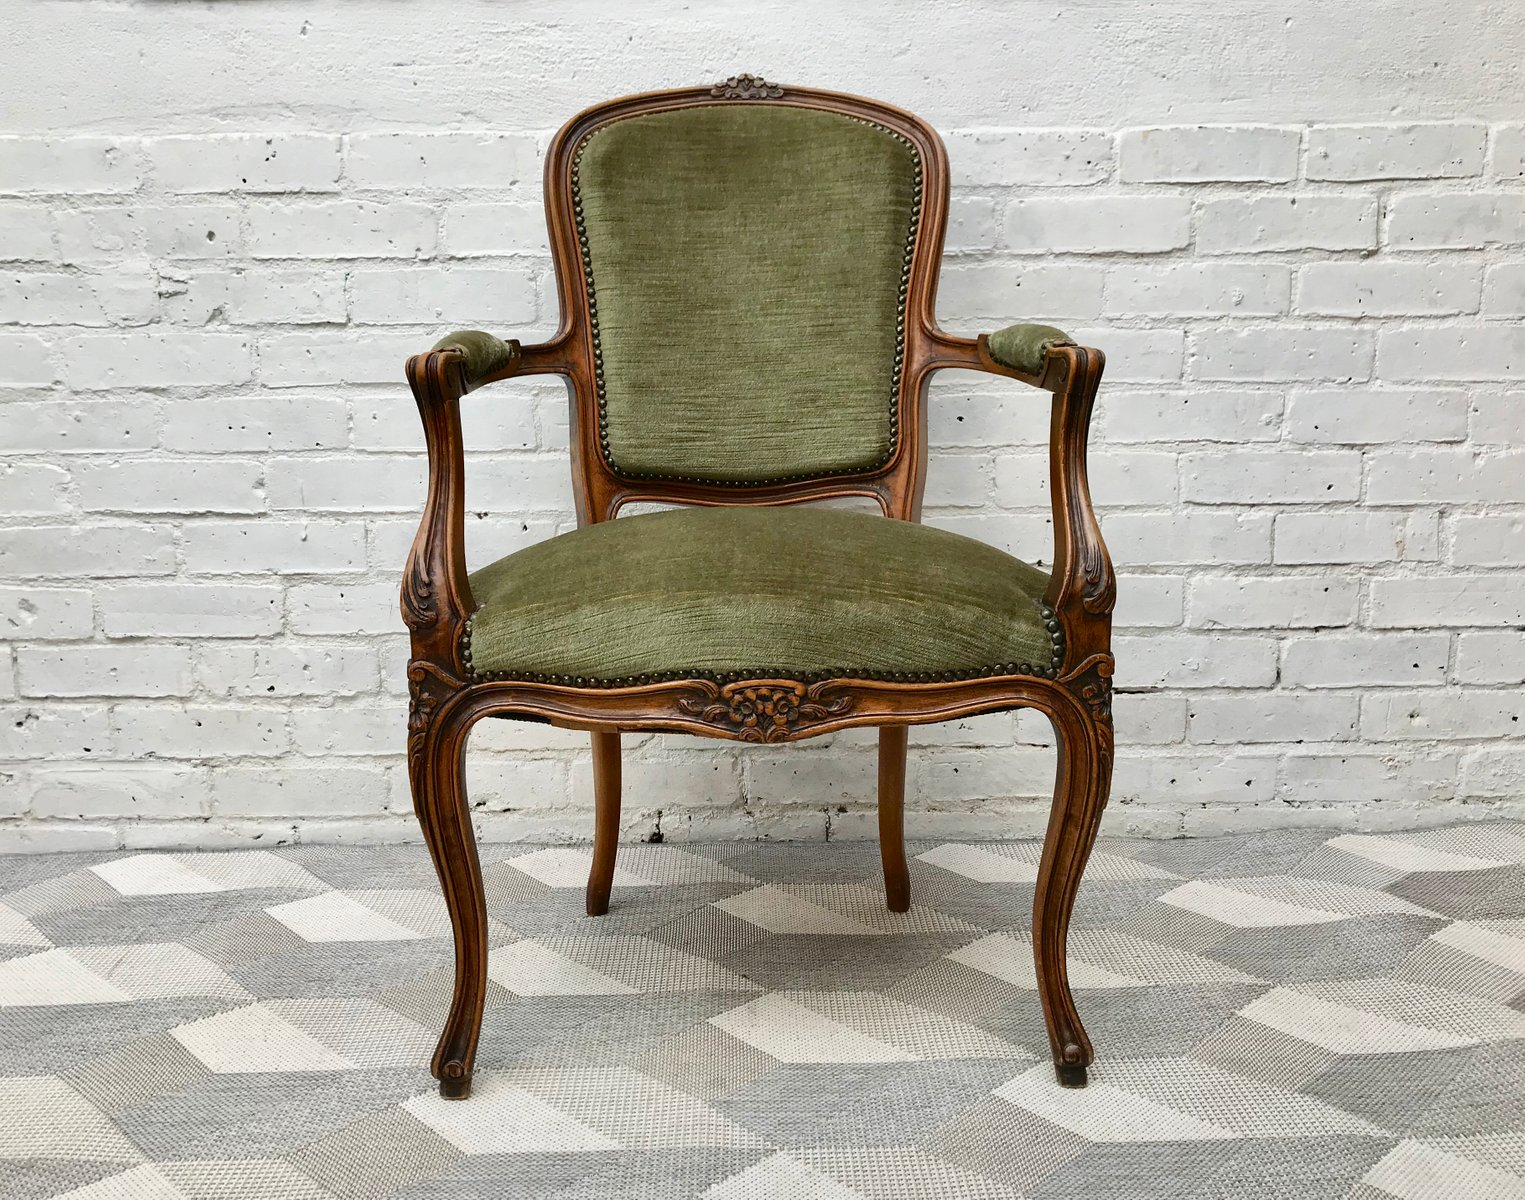 French Wooden Chairs ~ Vintage french louis xvi style wooden chair for sale at pamono